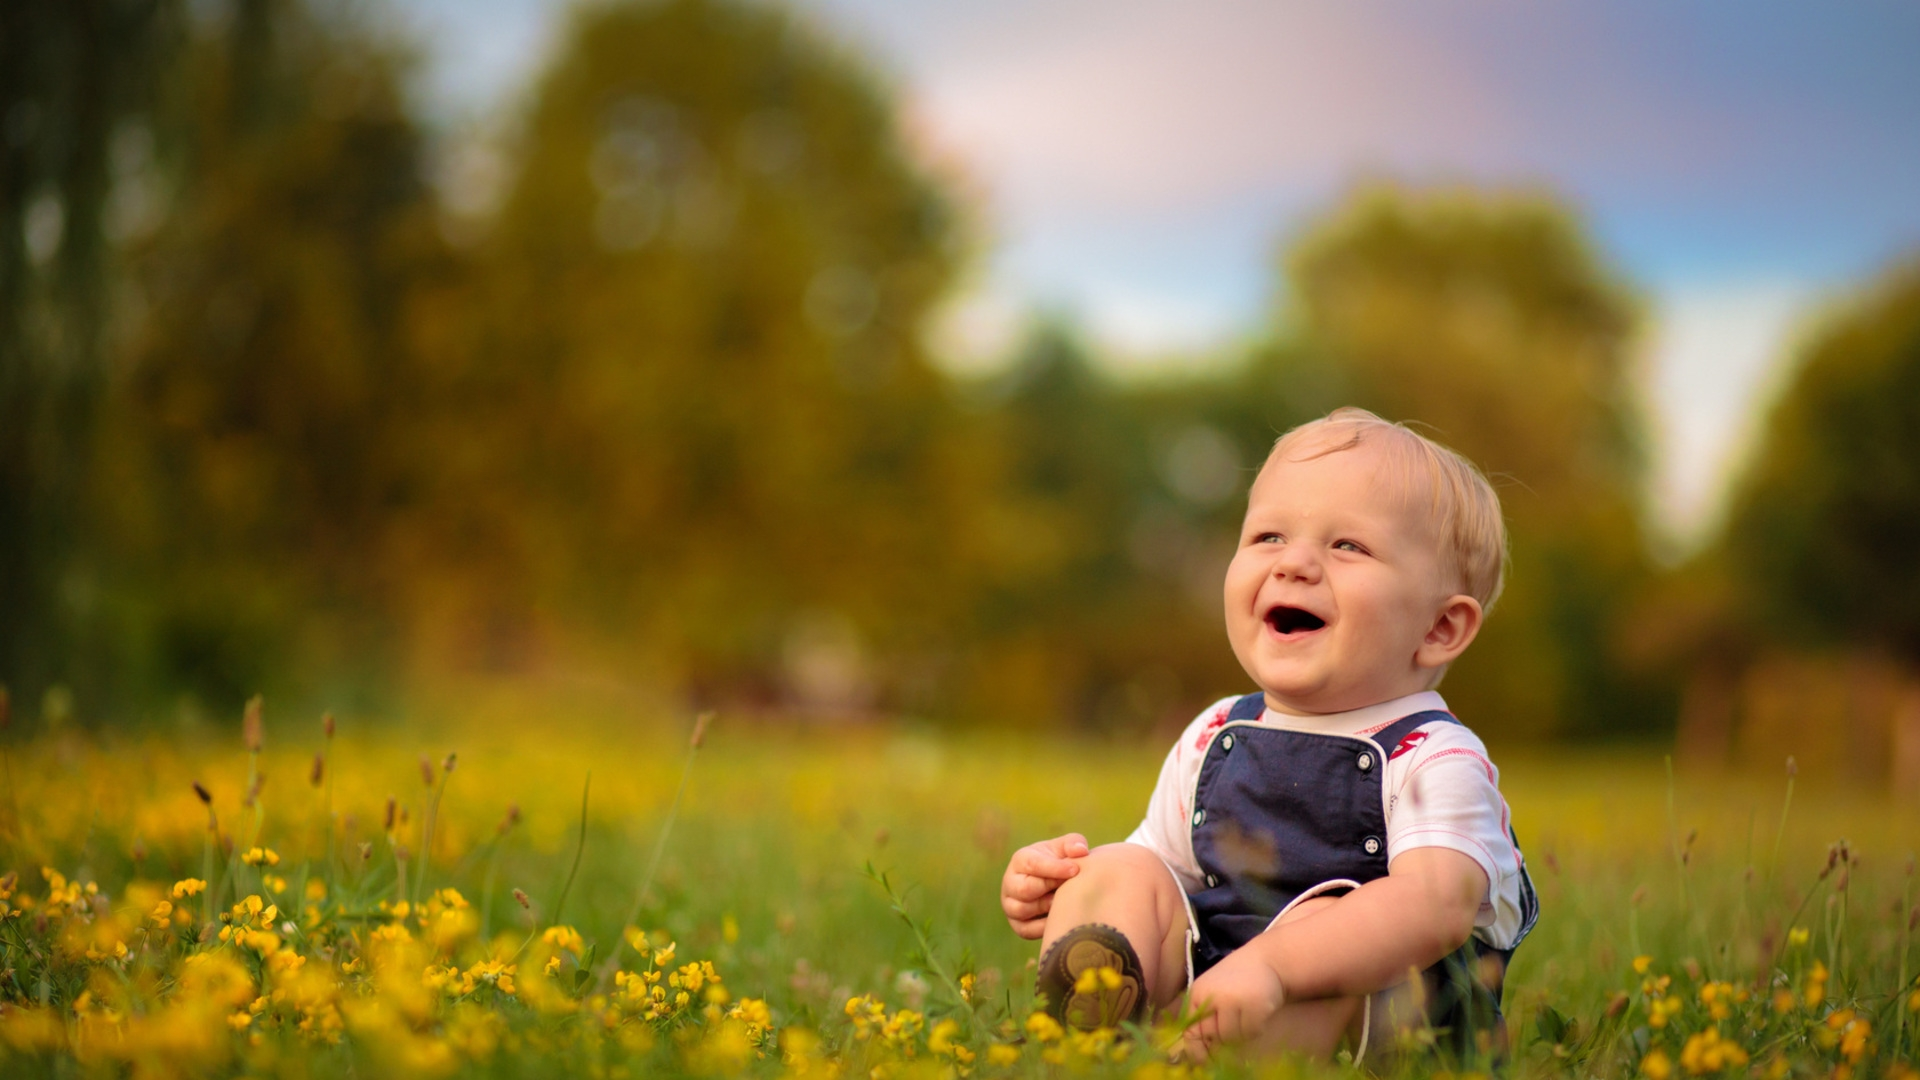 Download Wallpaper 1920x1080 Baby Boy Laugh Smile Full HD 1080p Background